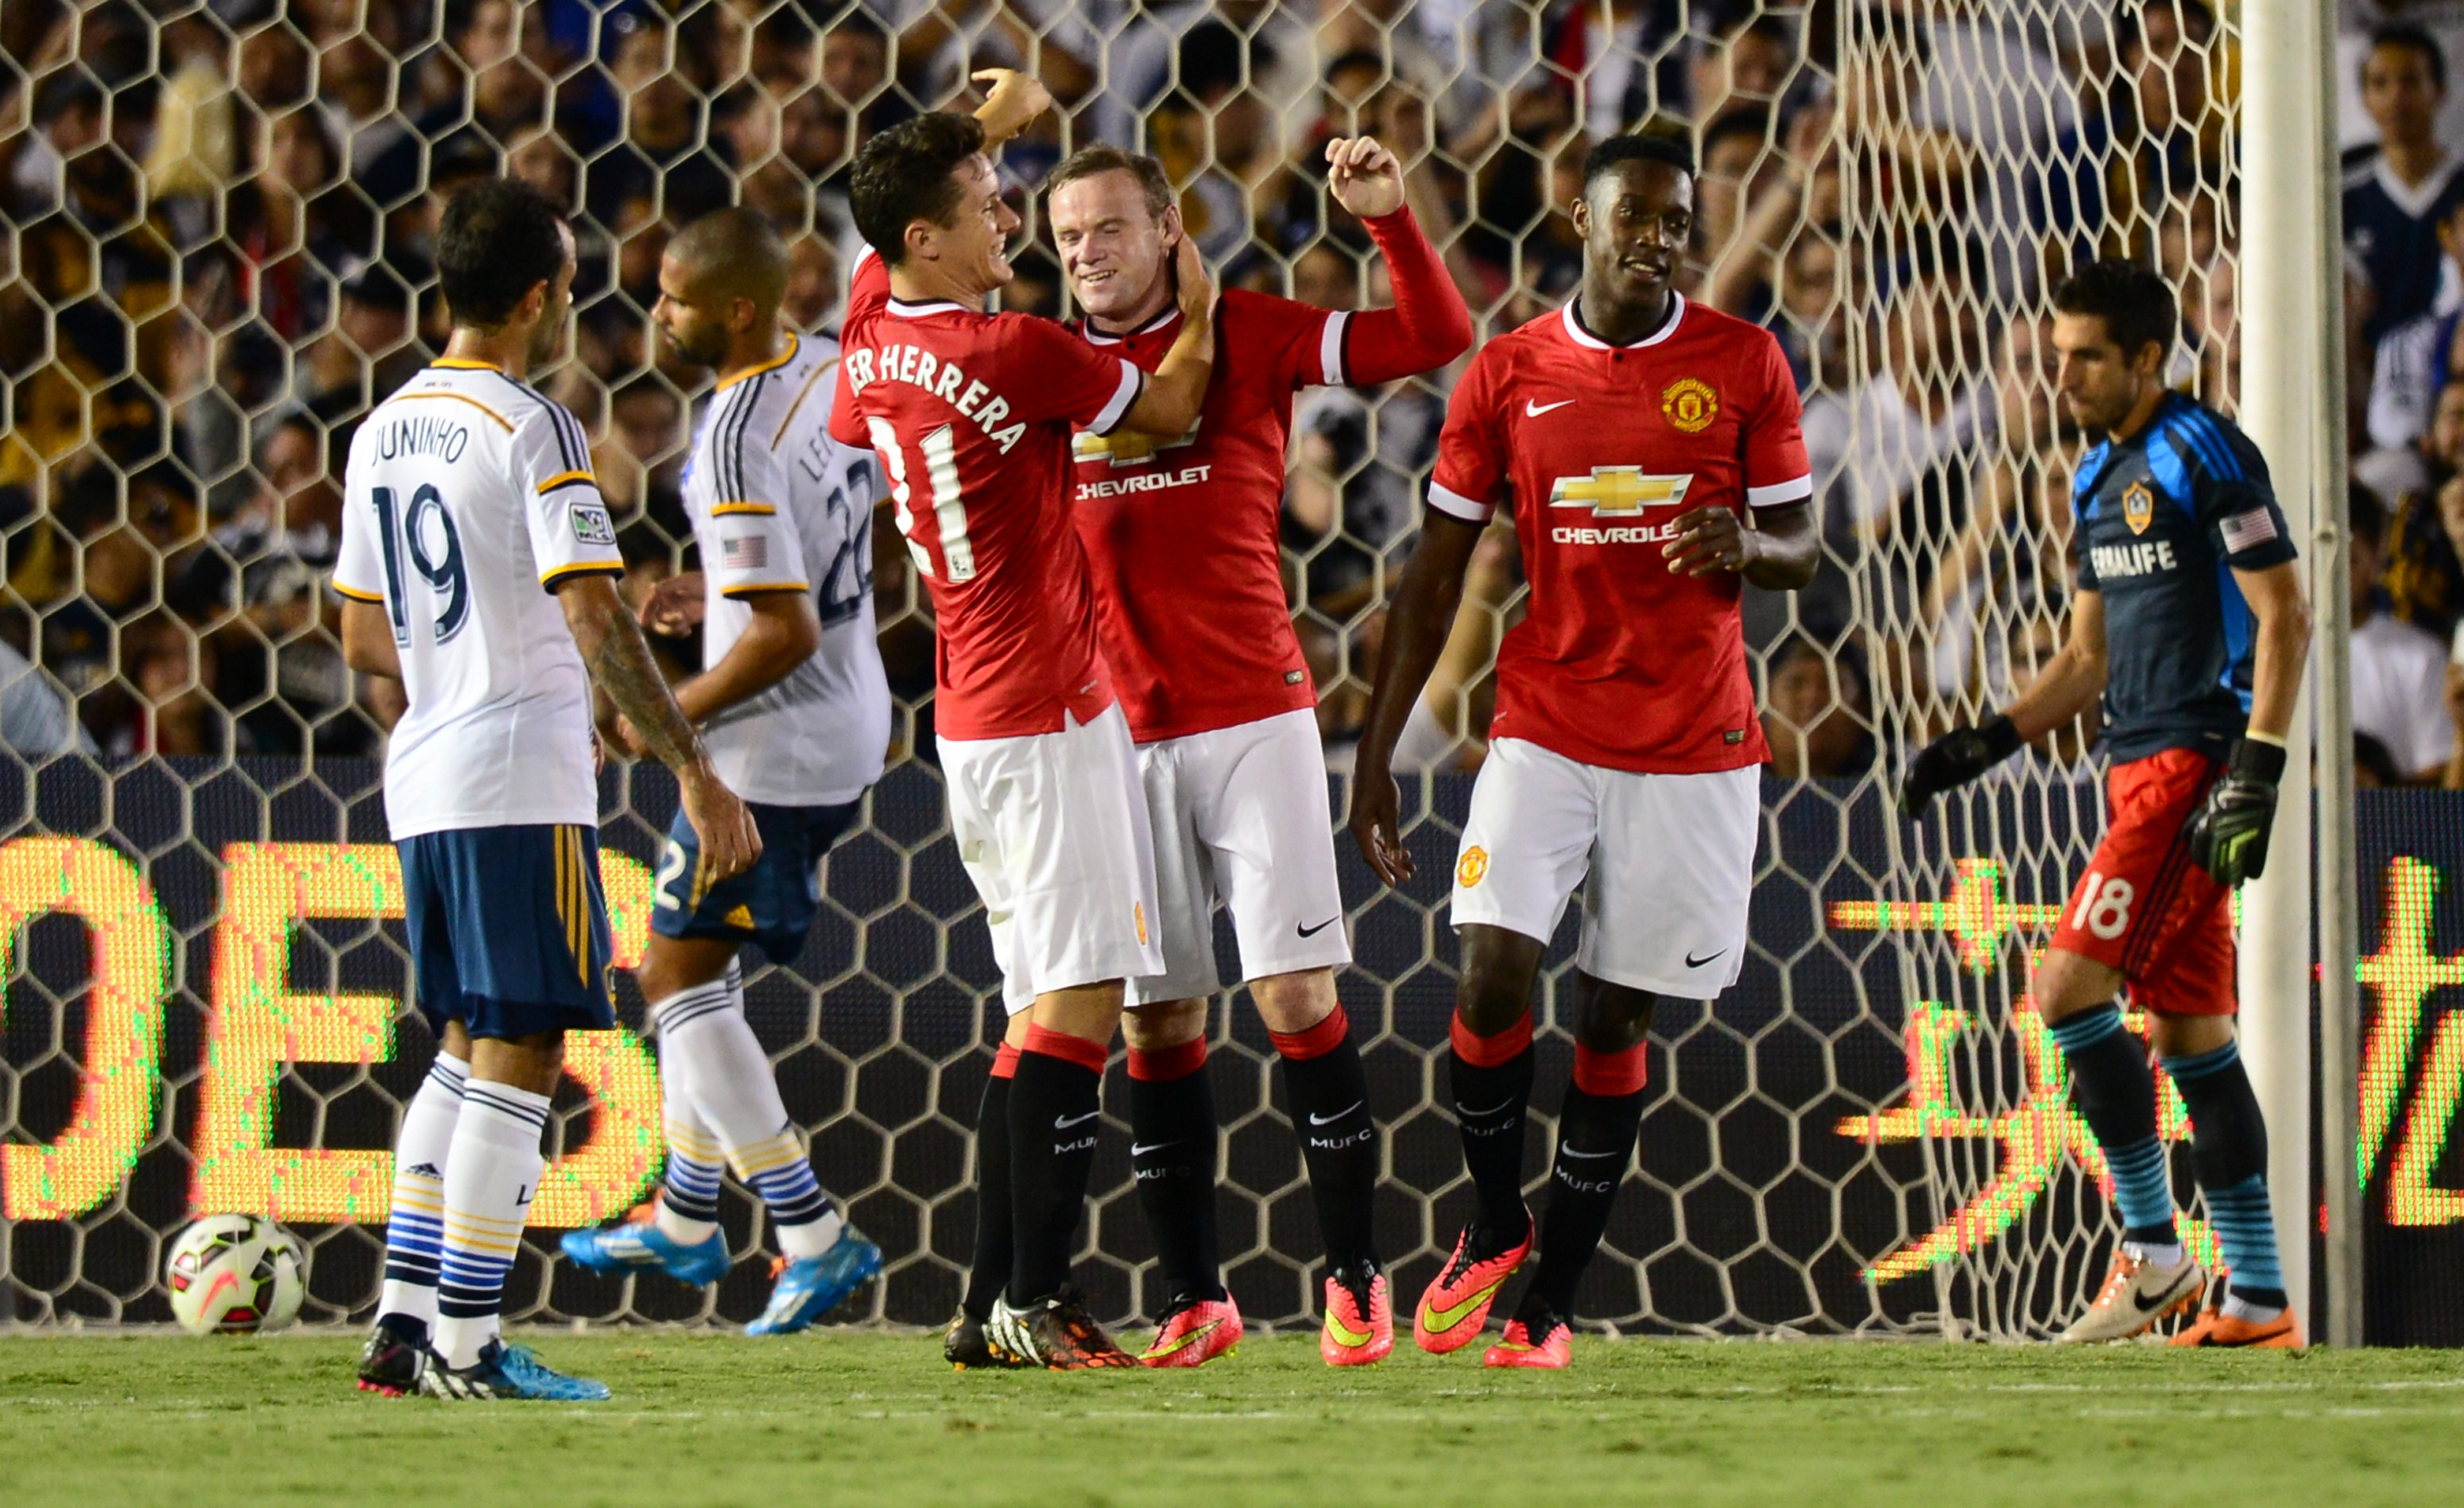 Five things we learned from Van Gaal's first game in charge of Man Utd